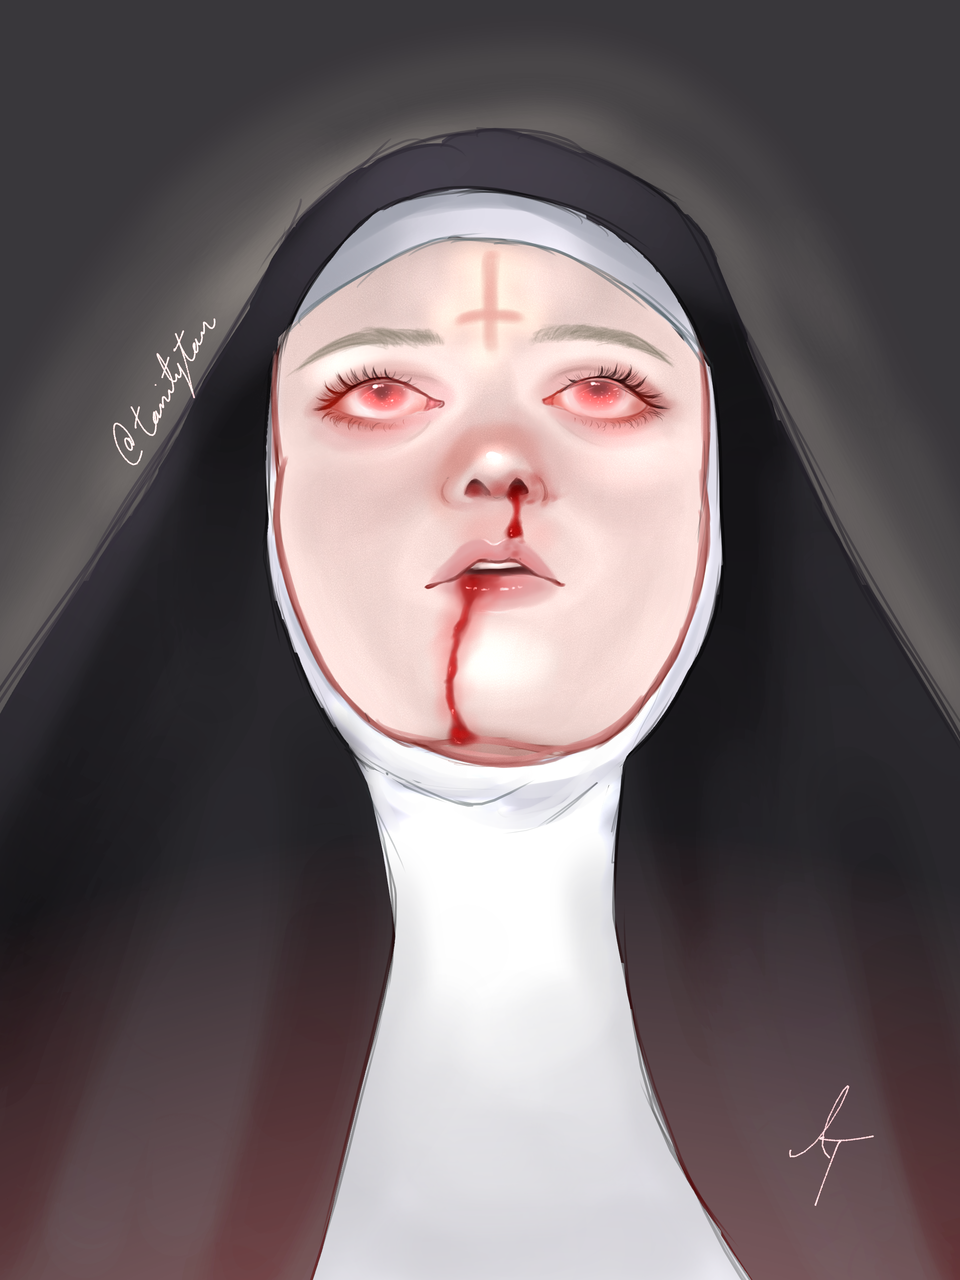 Possessed (The Nun inspired)